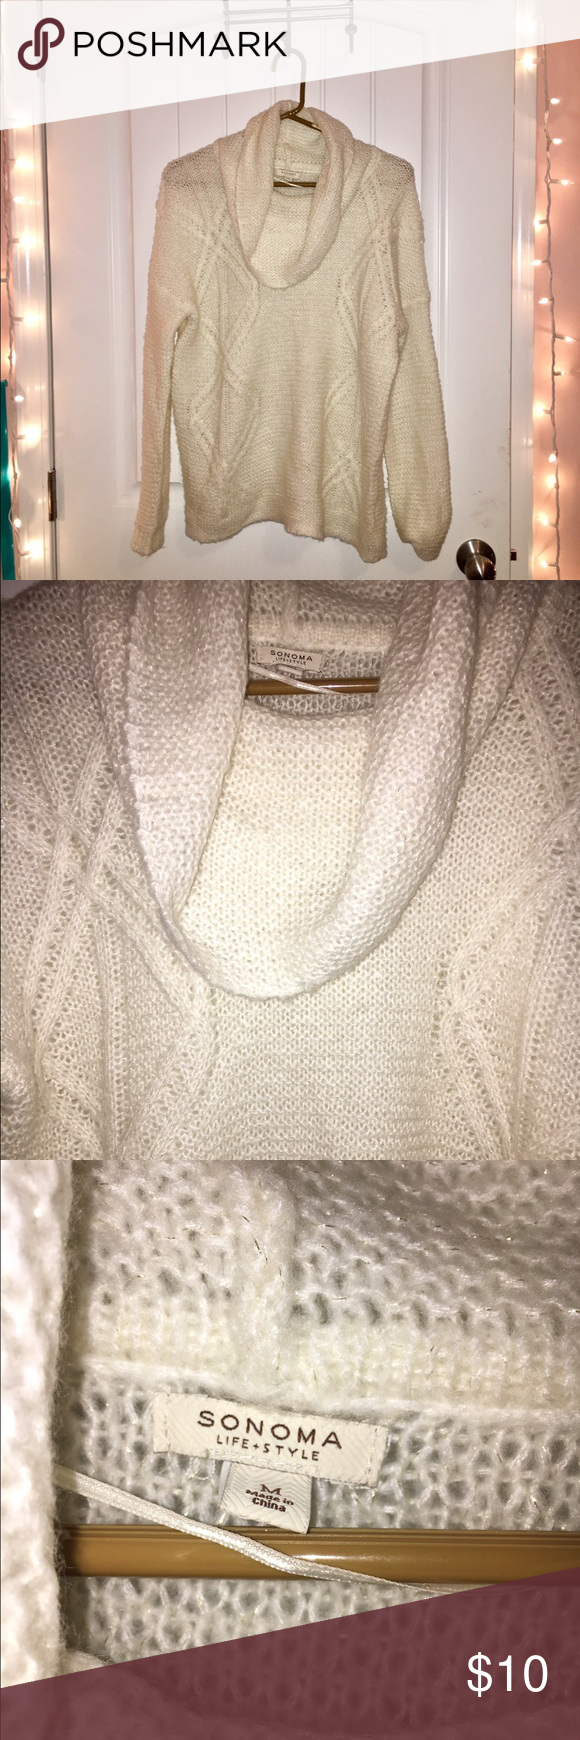 Cream Cowl Neck Sweater Very trendy! Cream colored cowl neck ...